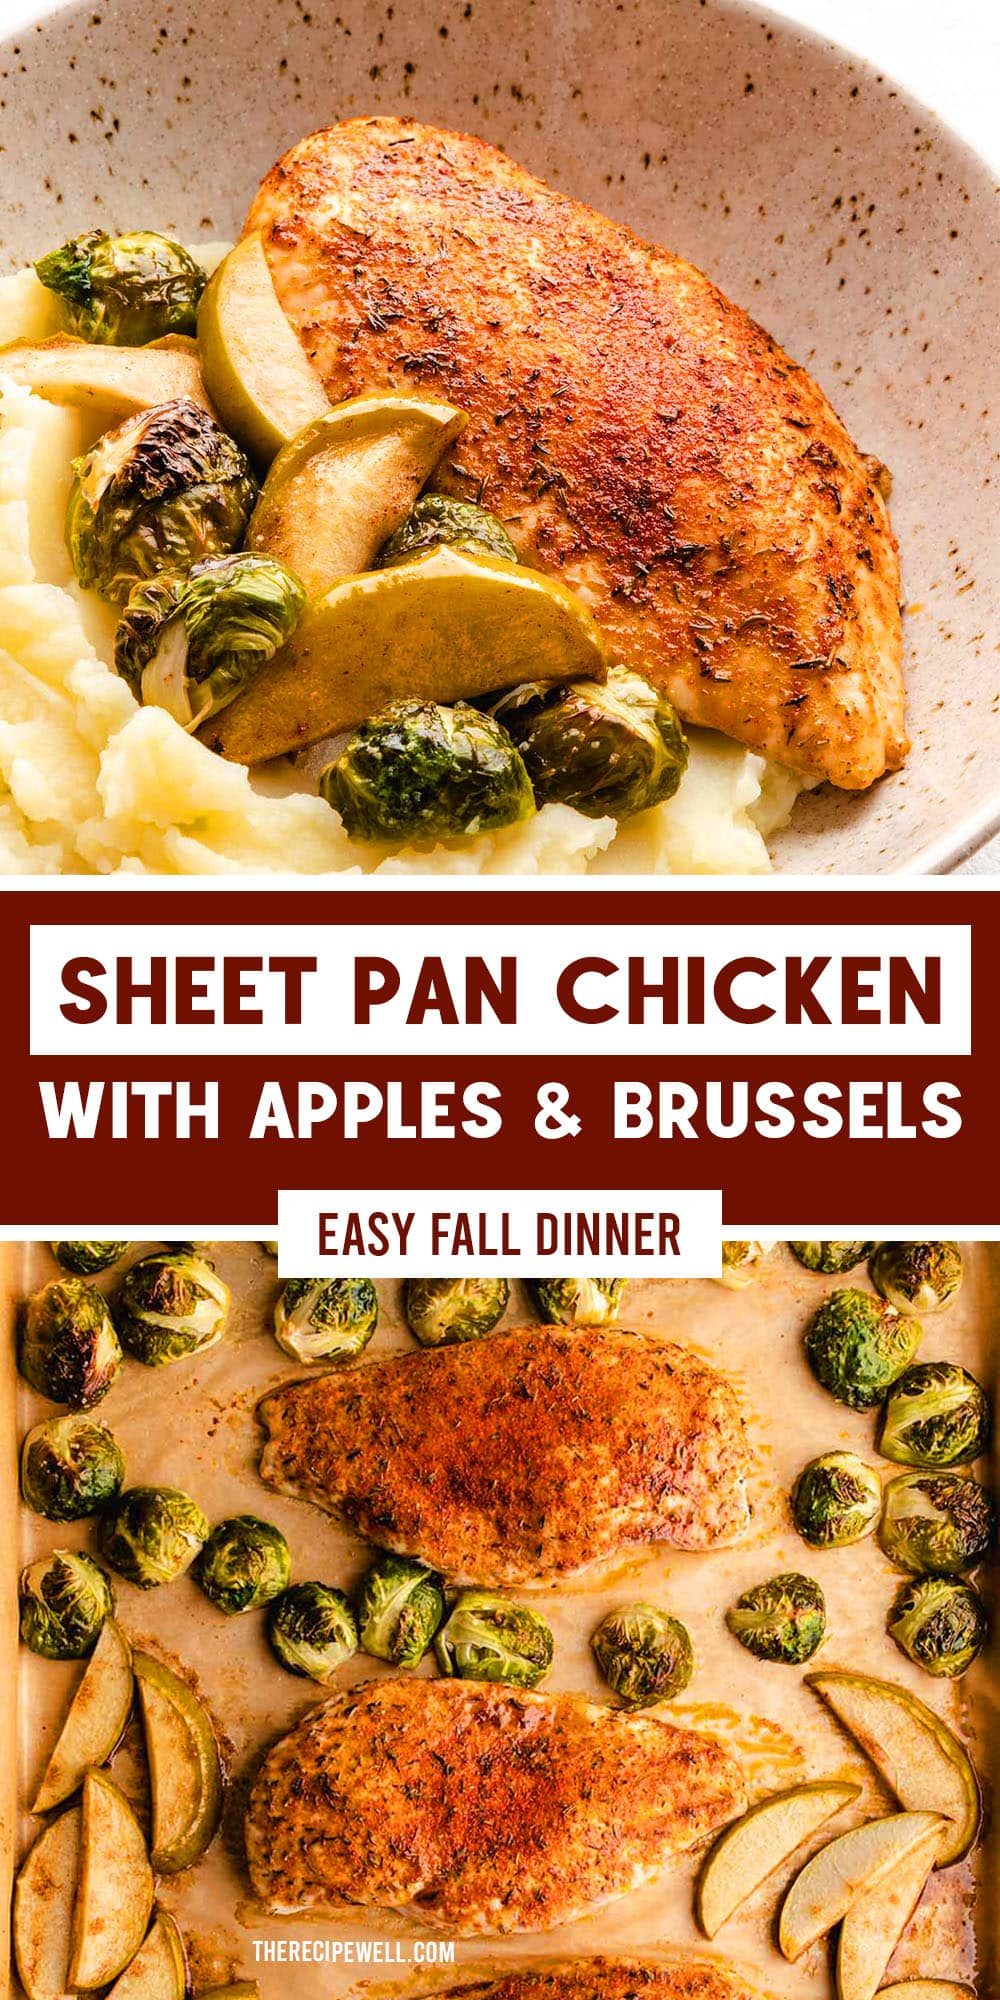 This apple chicken recipe is an easy sheet pan meal with cozy fall vibes. Perfectly seasoned chicken, tart apple and roasted Brussels sprouts come together to make a delicious autumn dinner. via @therecipewell